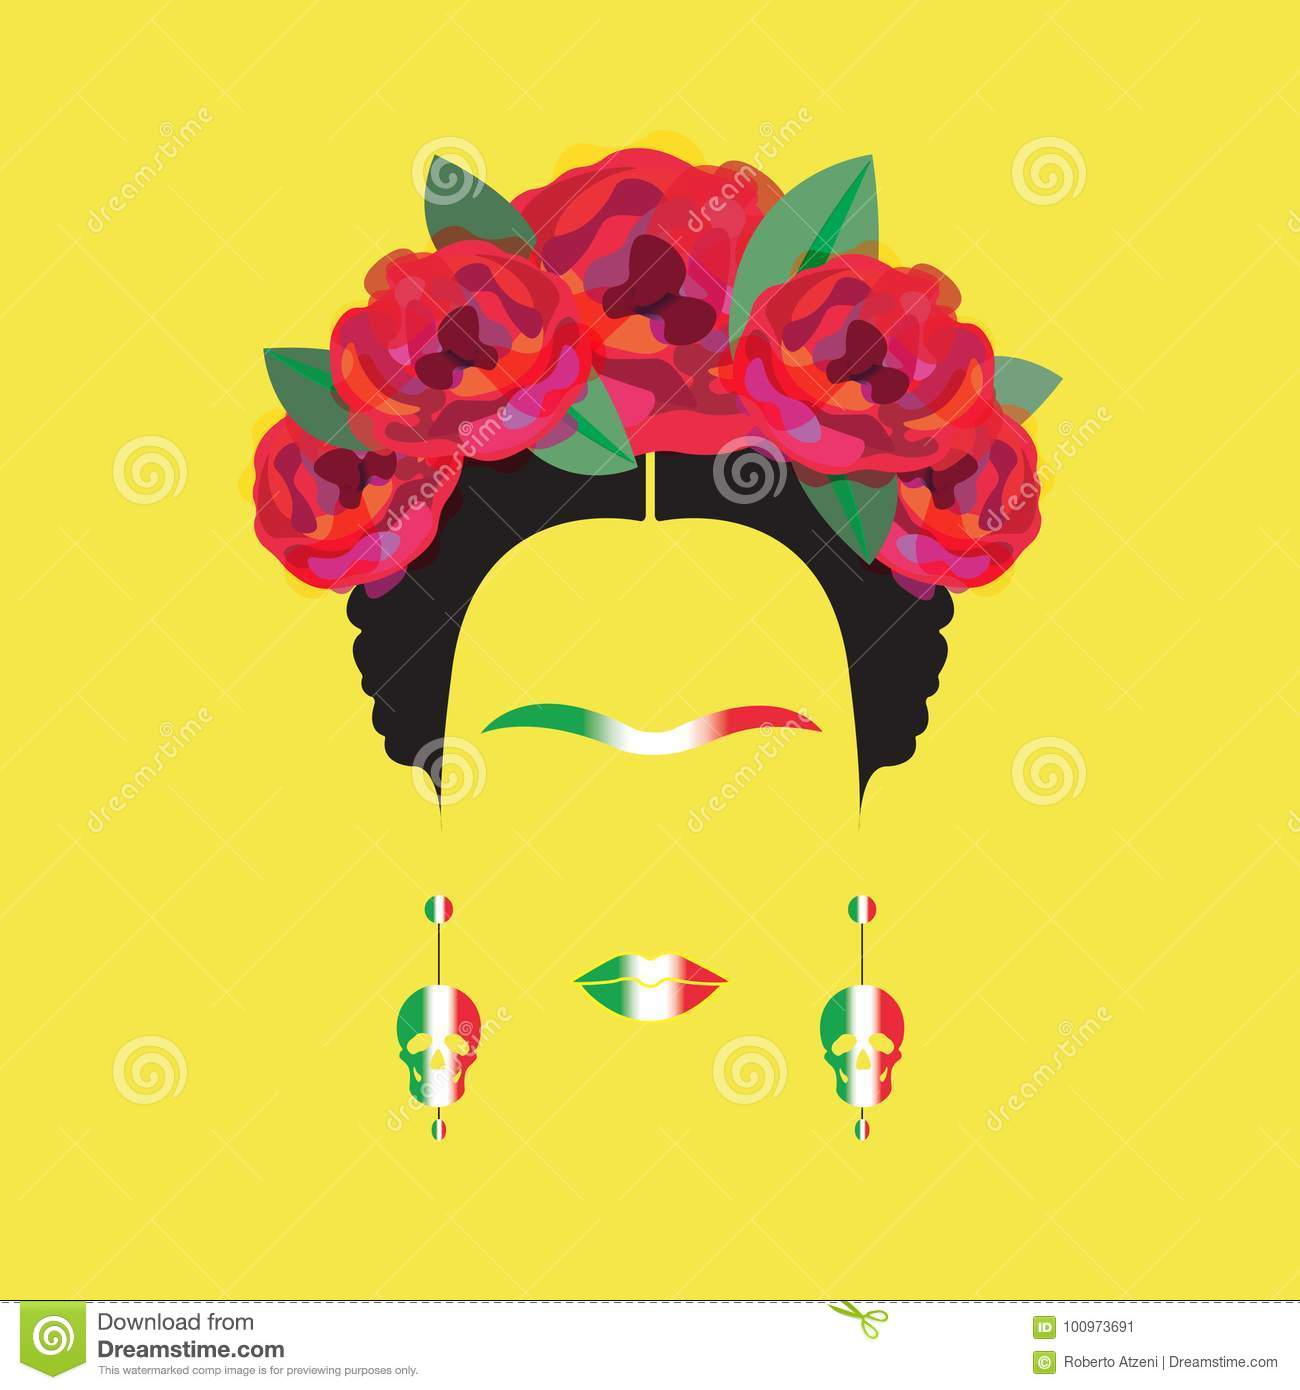 Portrait of Frida Kahlo minimalist Mexican woman with skulls of earrings and red flowers, Mexican flag, isolated